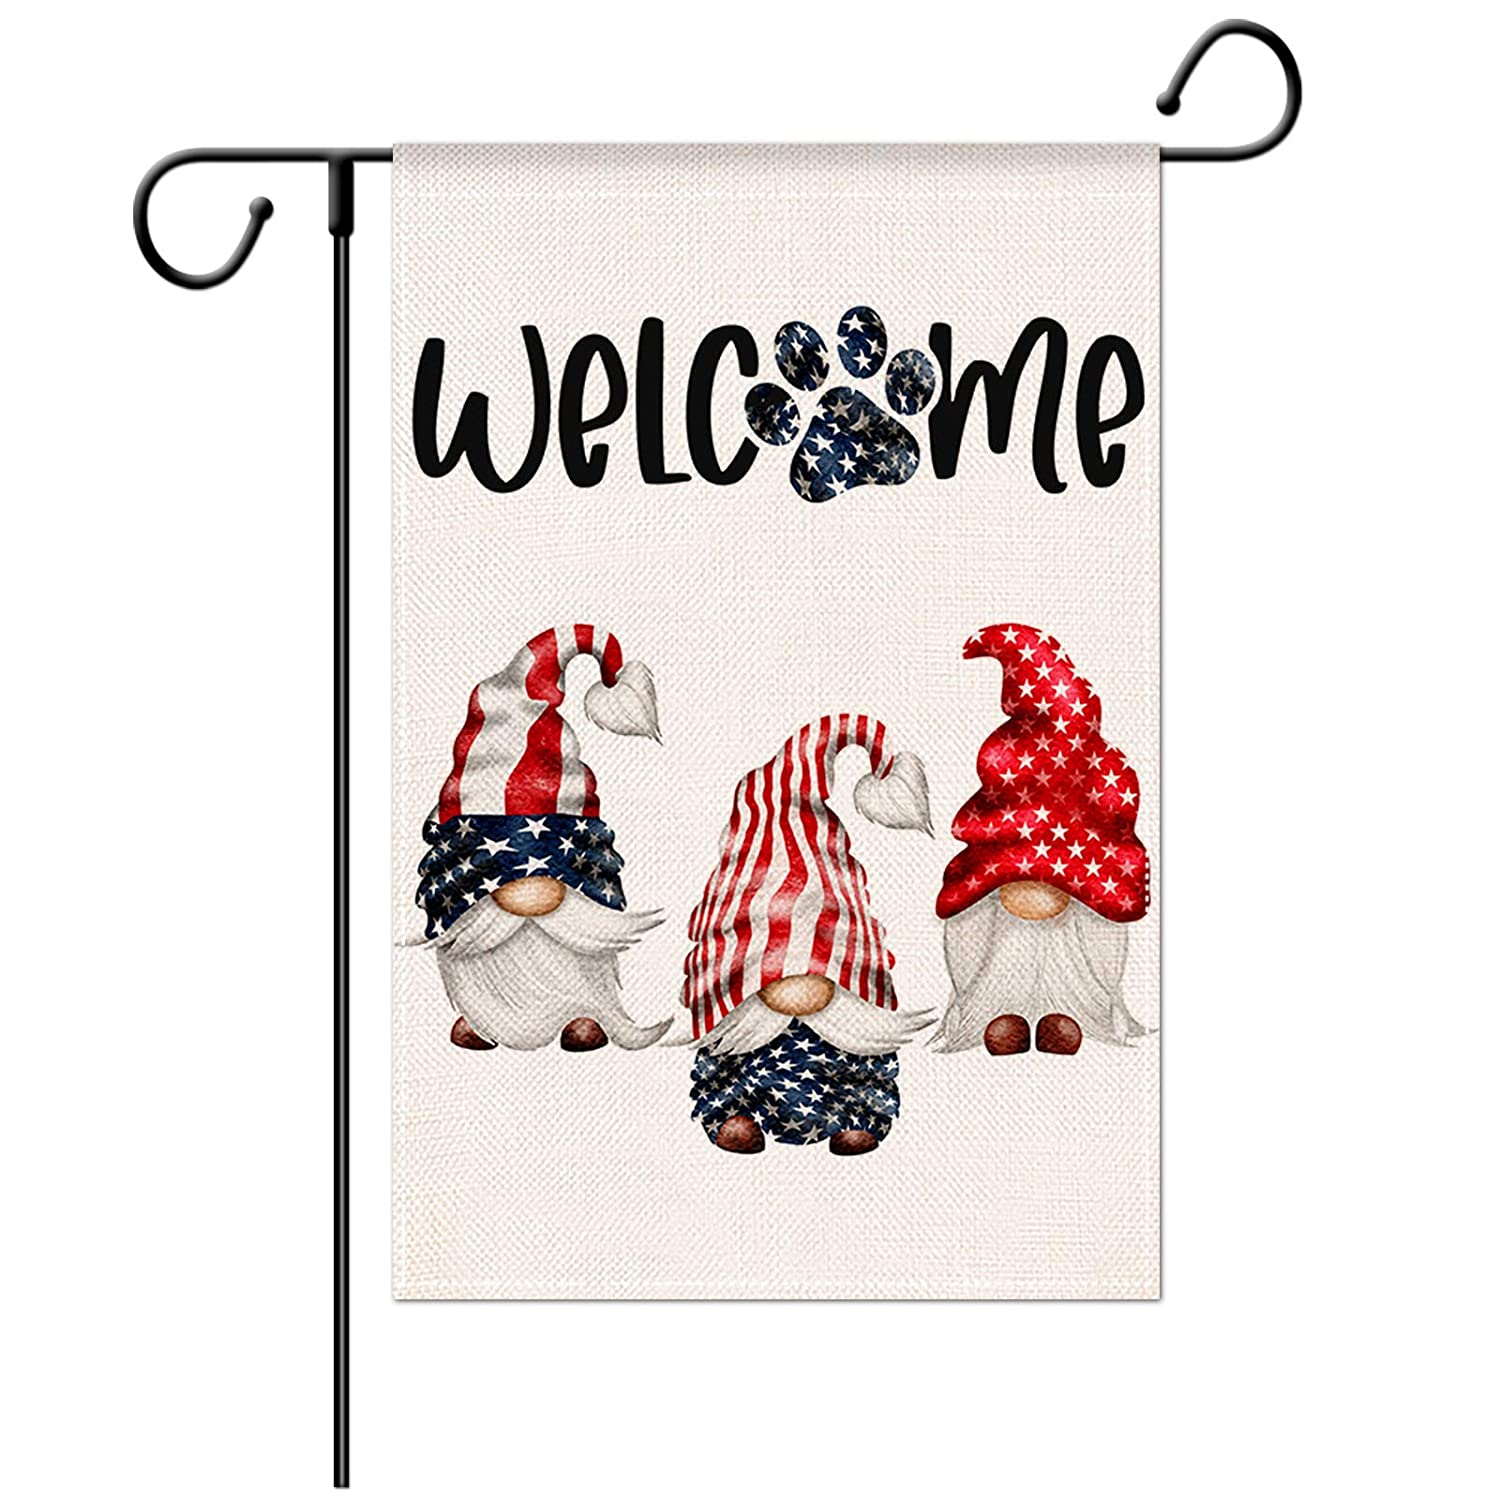 Jartinle Welcome Gnomes Garden Flag Double Sided, 4th of July Decorative Patriotic American Flag Paw Print for Outside Yard Outdoor Memorial Day Decoration 12.5x18